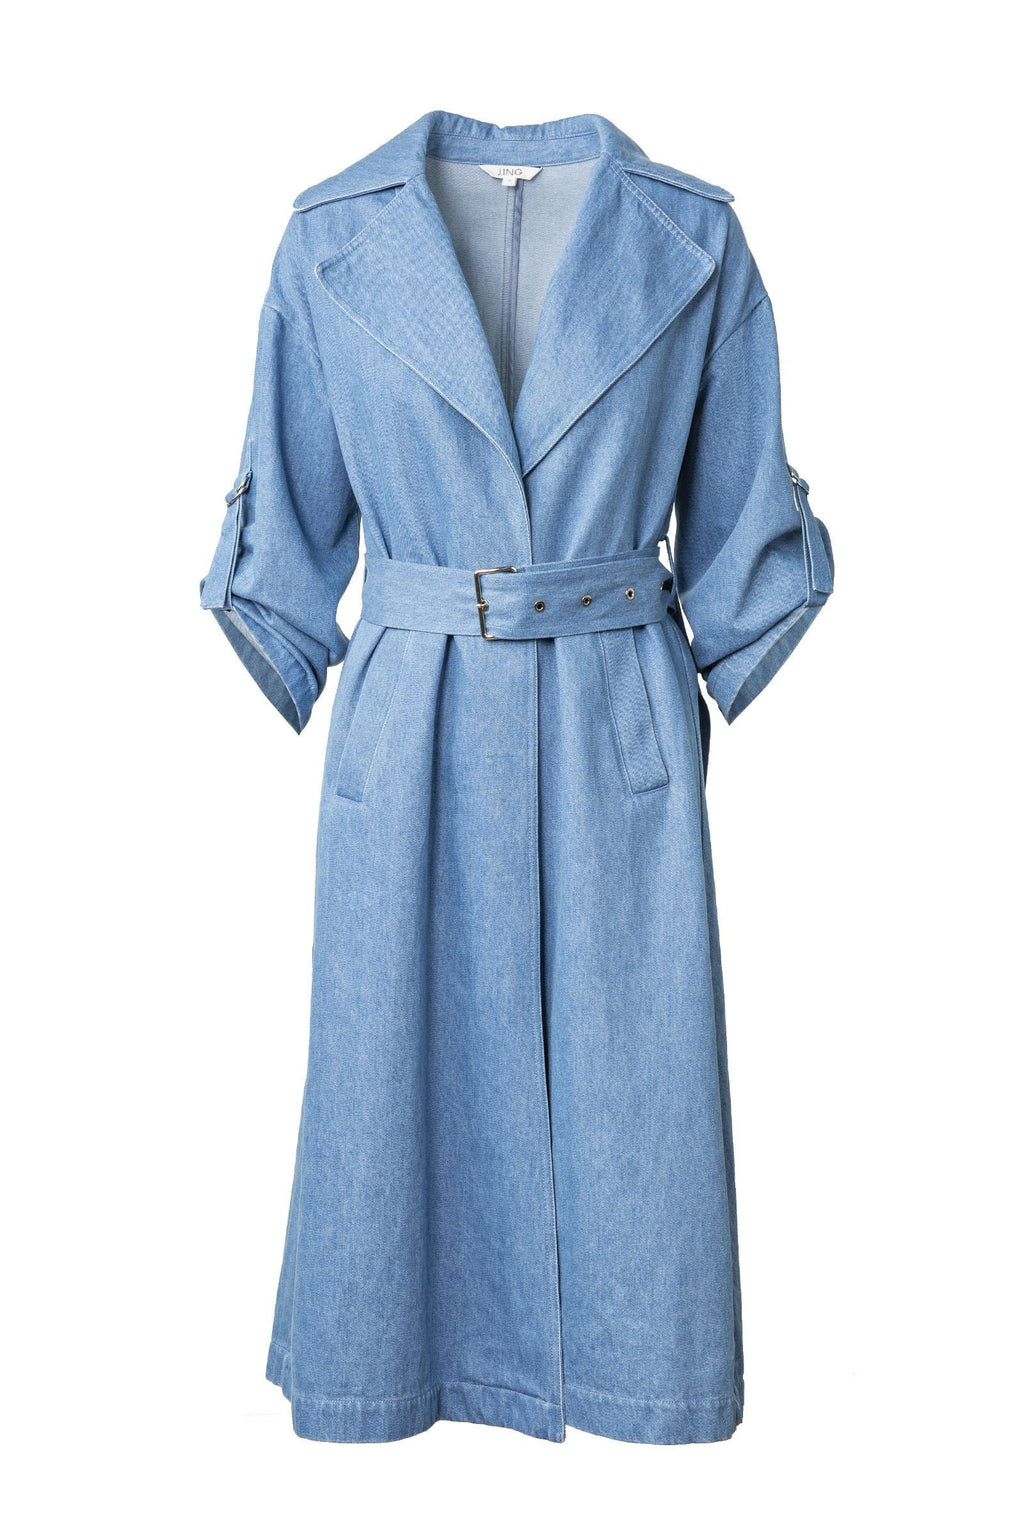 Nadine Blue Jean Trench Coat by J.ING Women's Clothing & Apparel